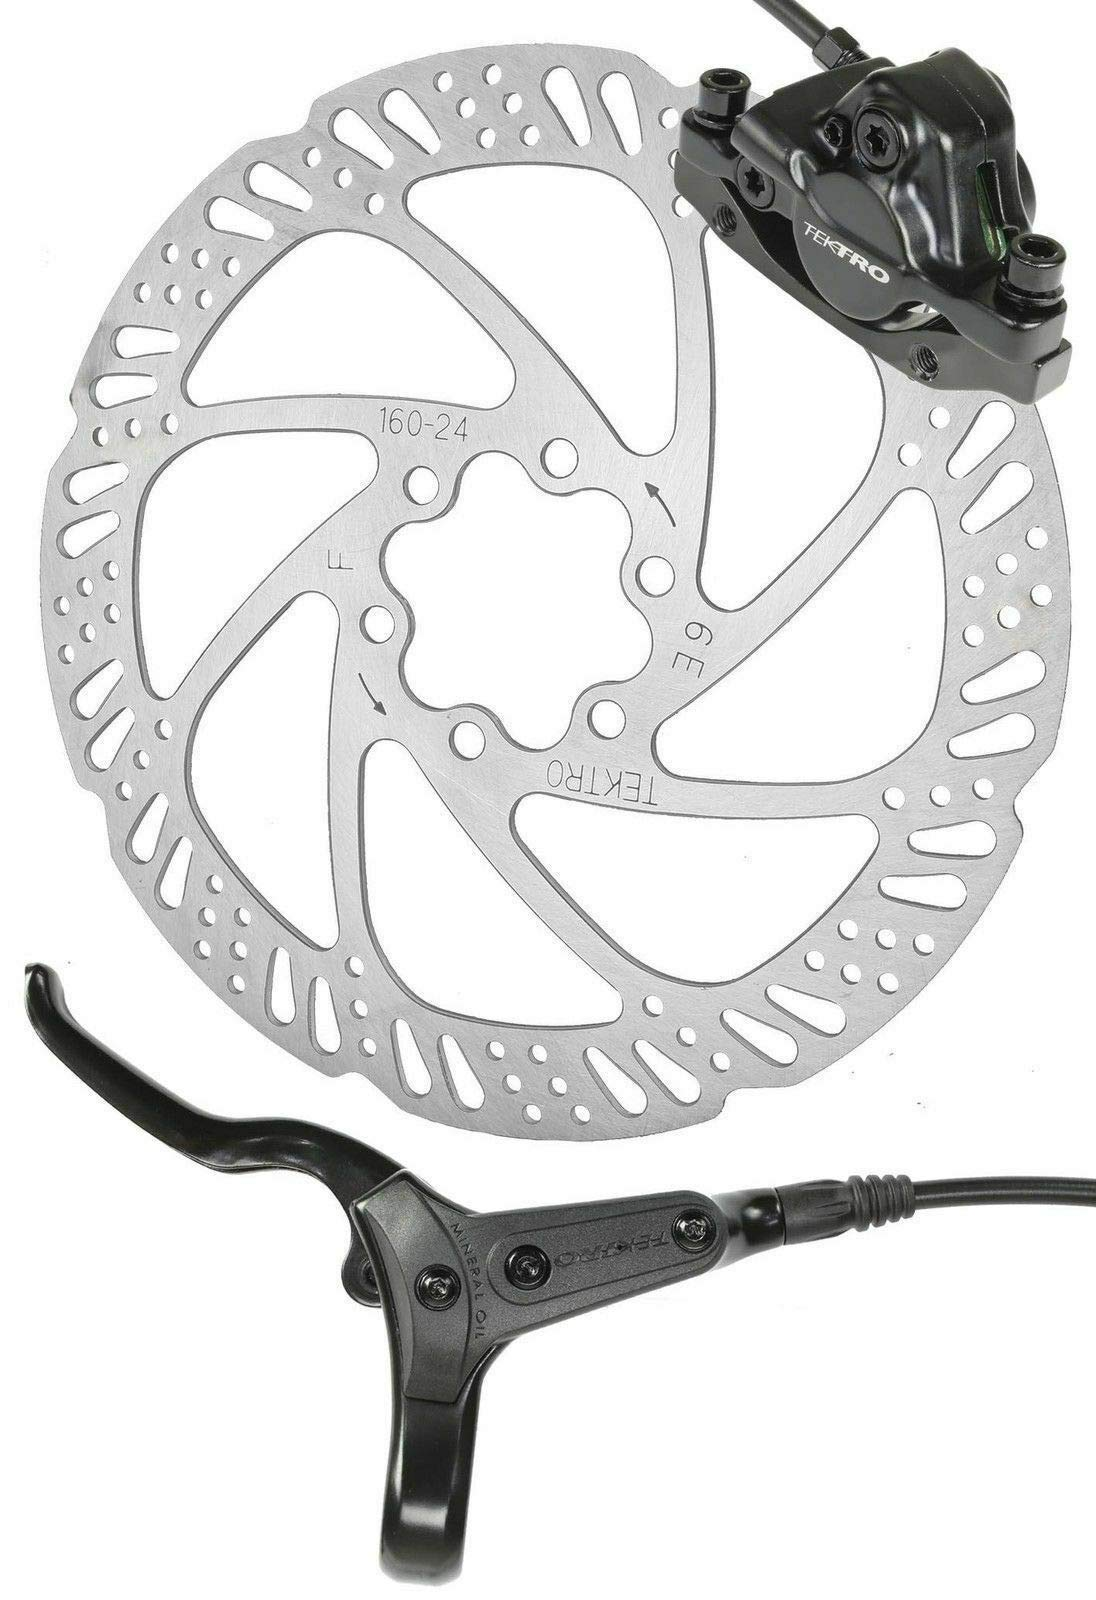 Tektro HD-M285 Hydraulic Disc Brake System Front 850mm with 160mm Rotor by Tektro